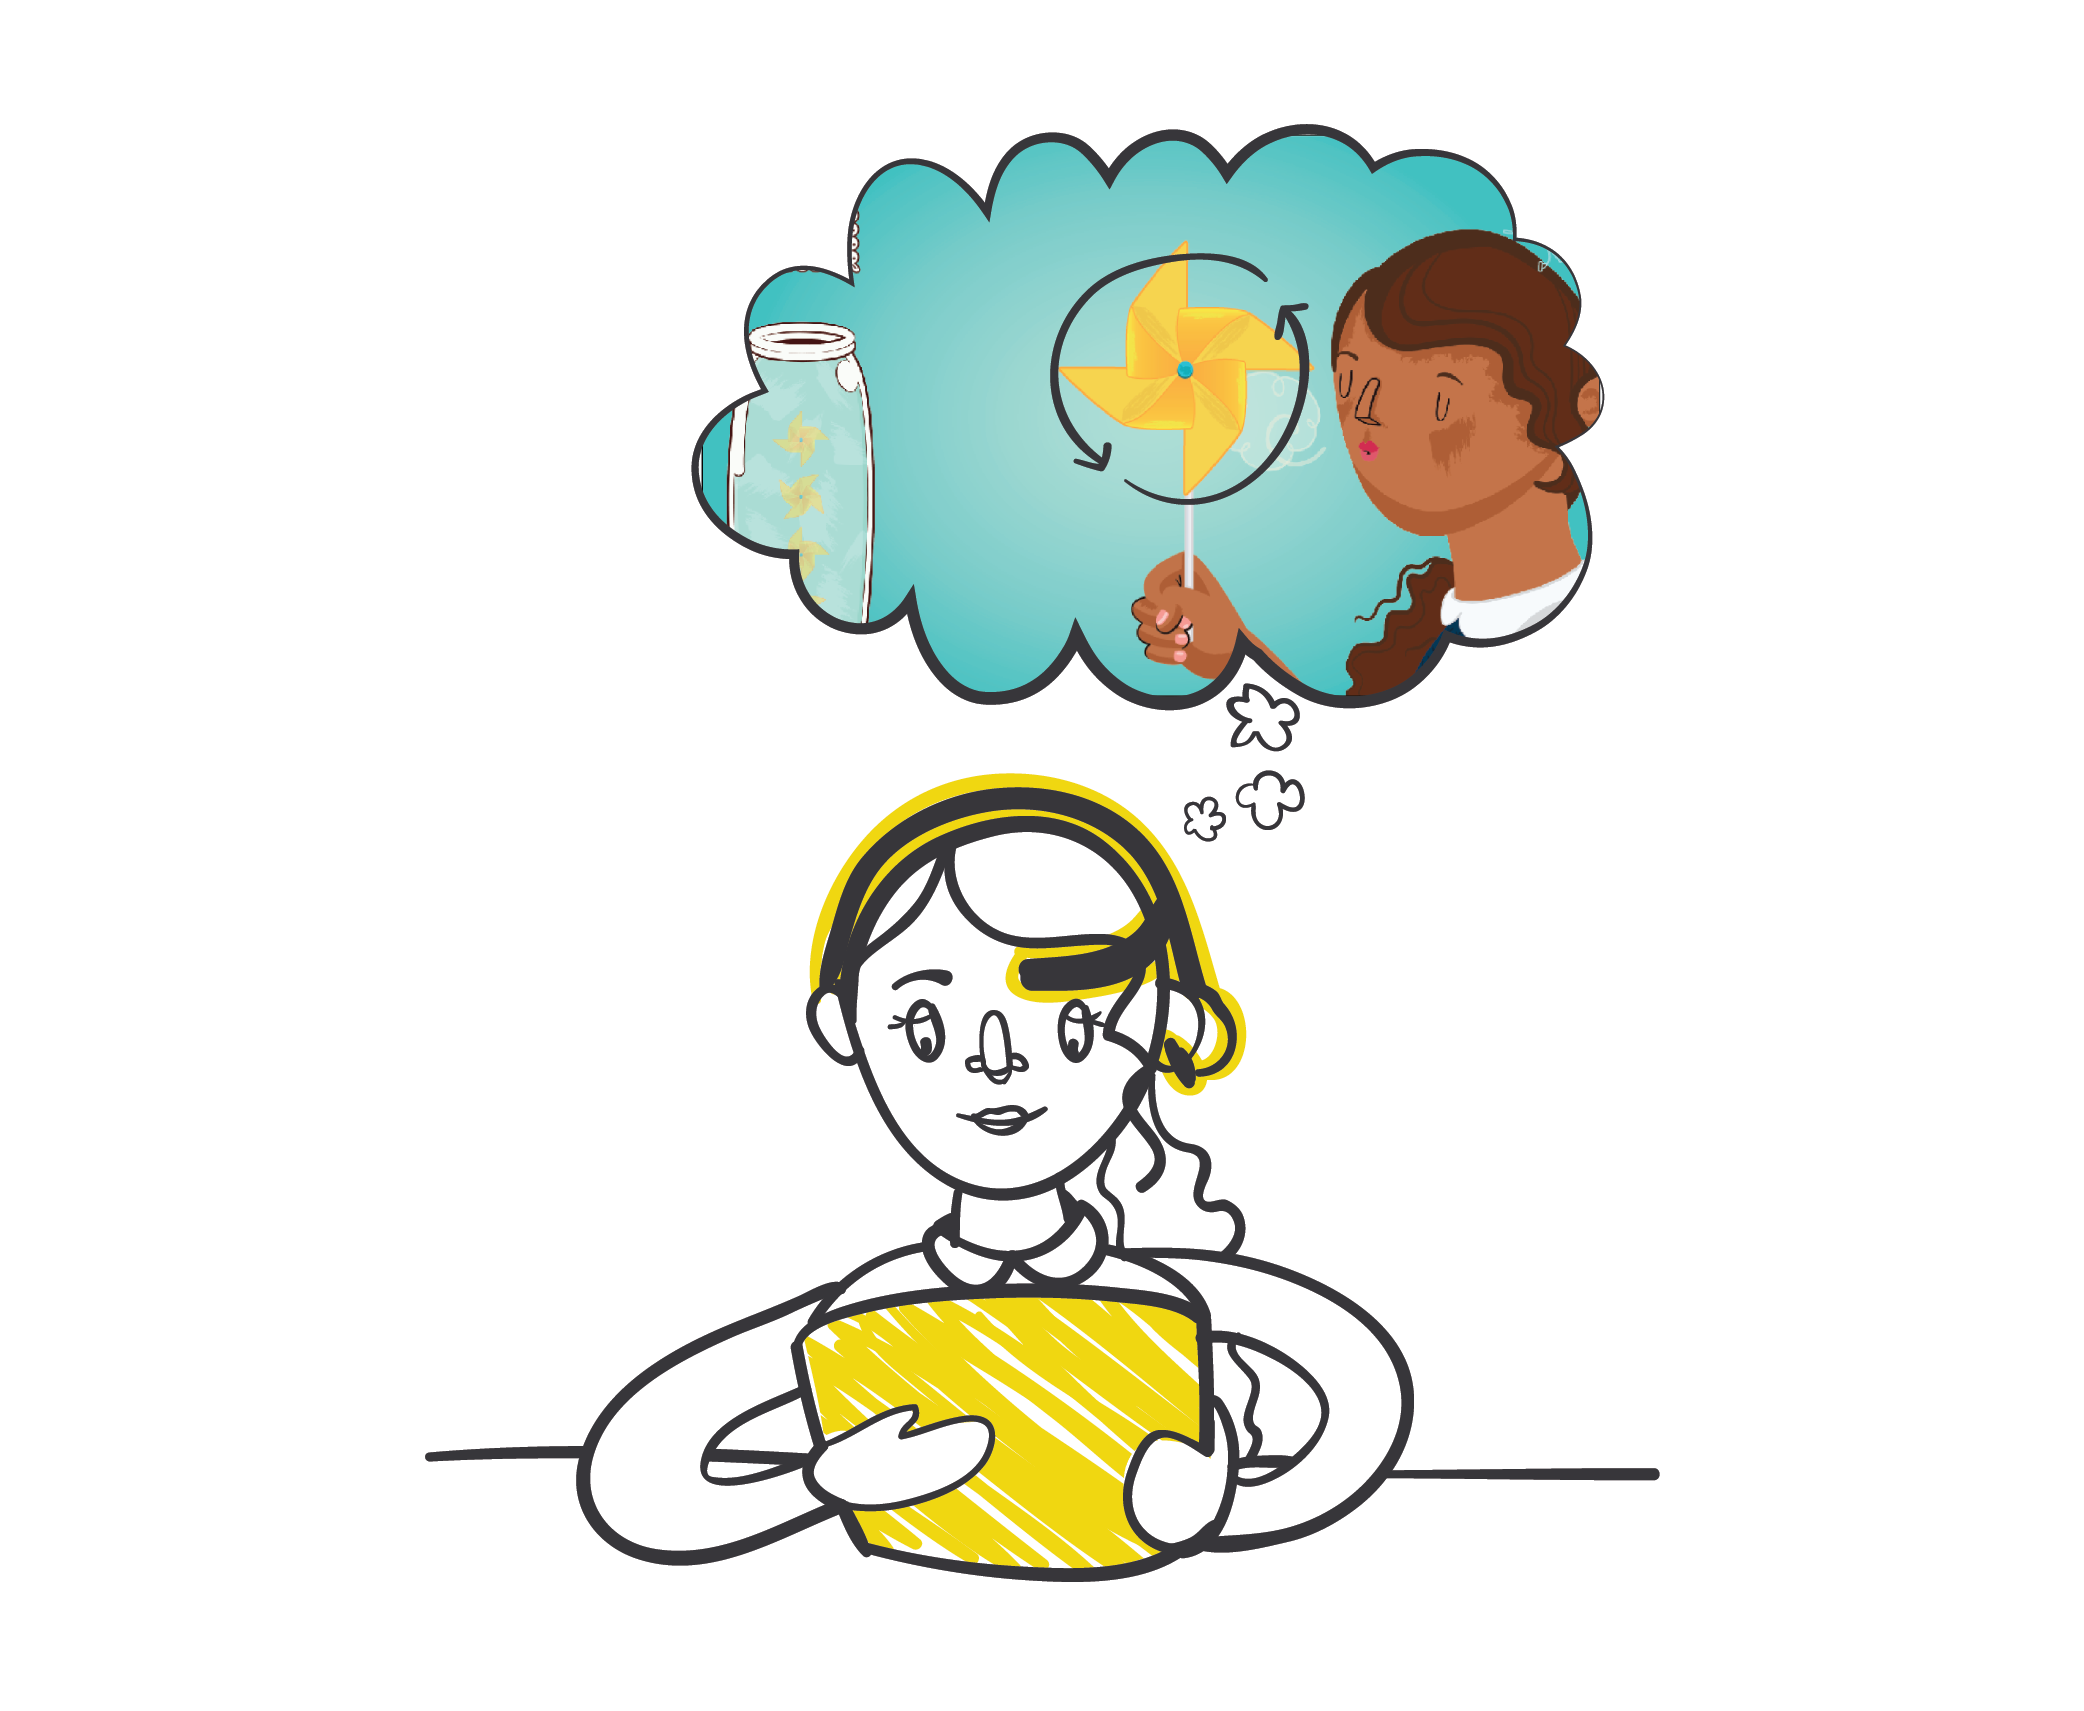 Mind-Full - Mind-Full is series of self-regulation games that helps children living in poverty improve their ability to stay calm and focused so that they can learn more effectively in school.